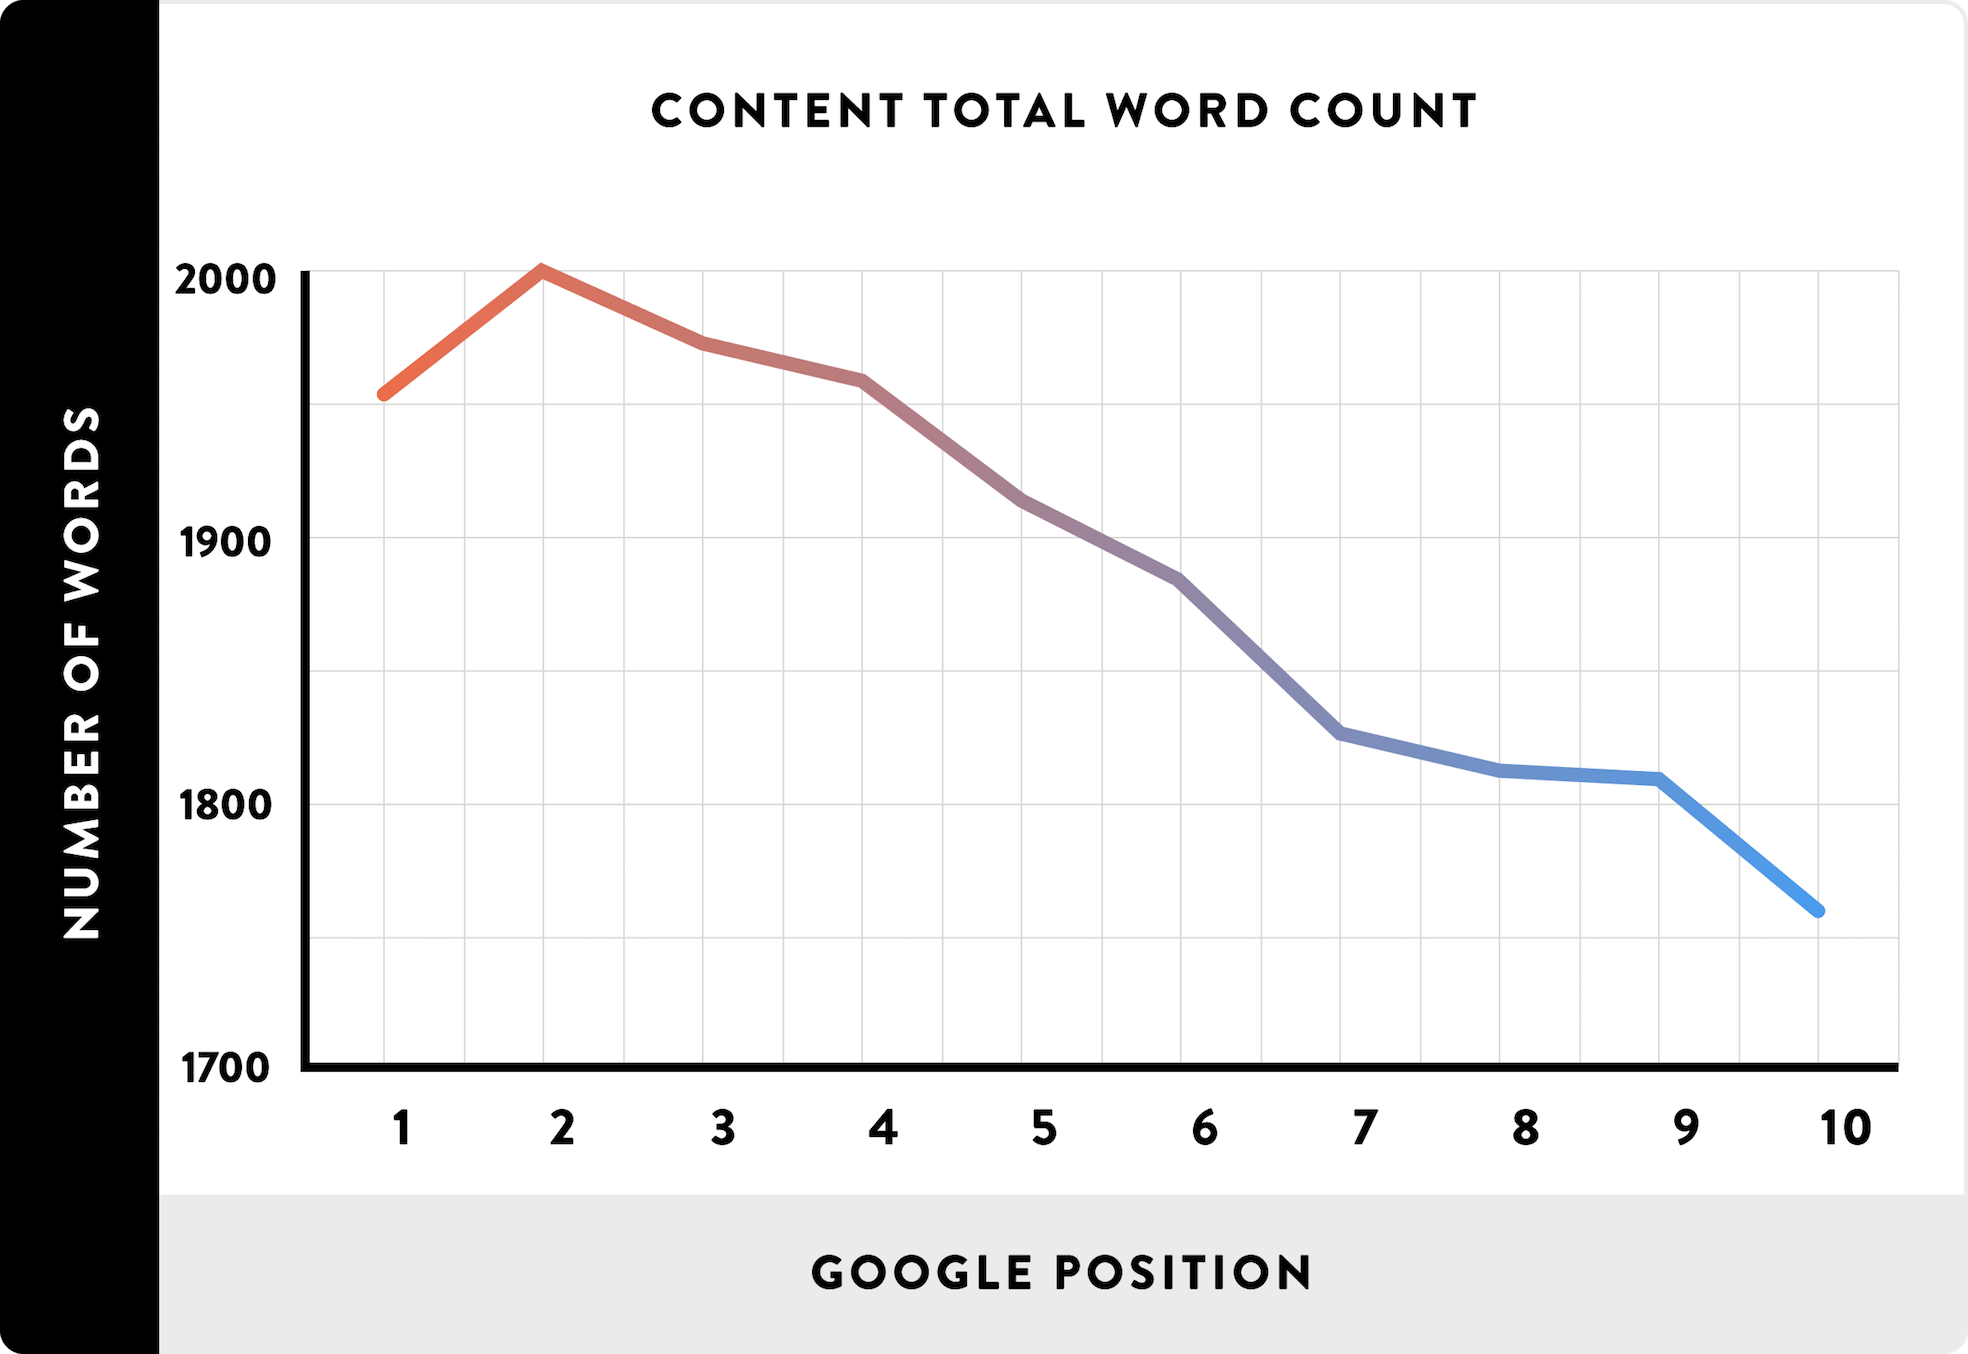 Average word count for Google search results